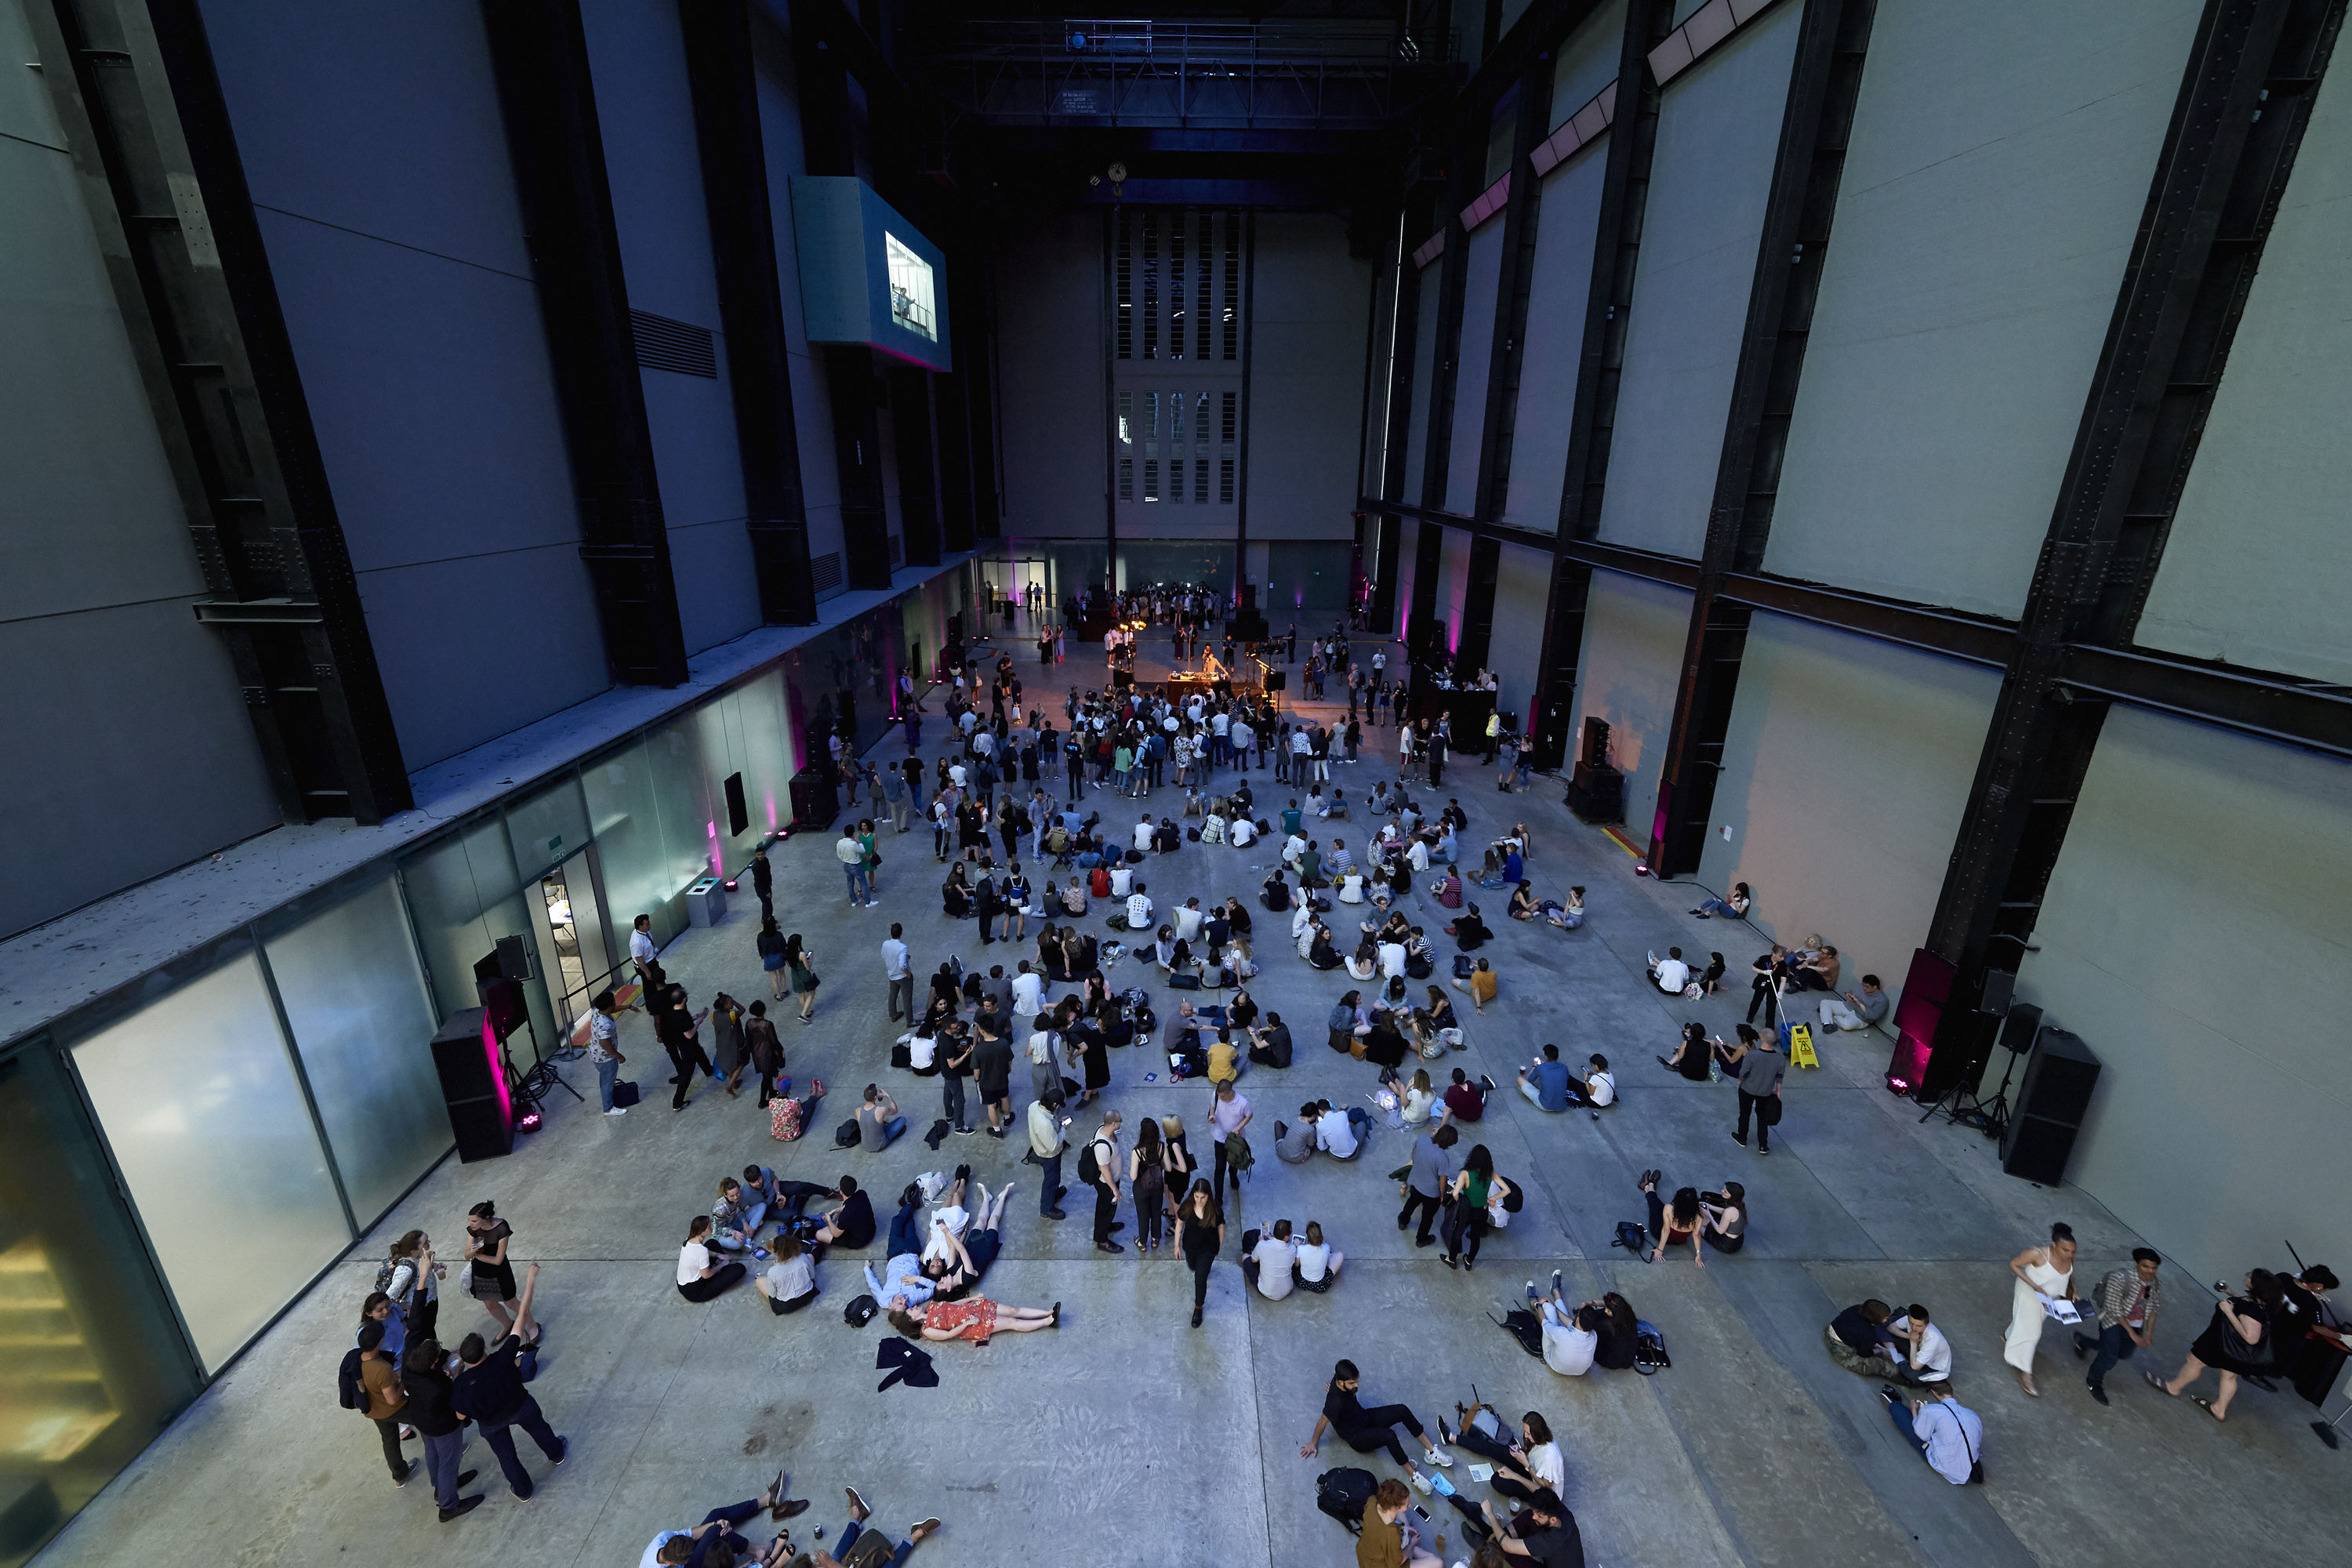 London's museum lates are going virtual